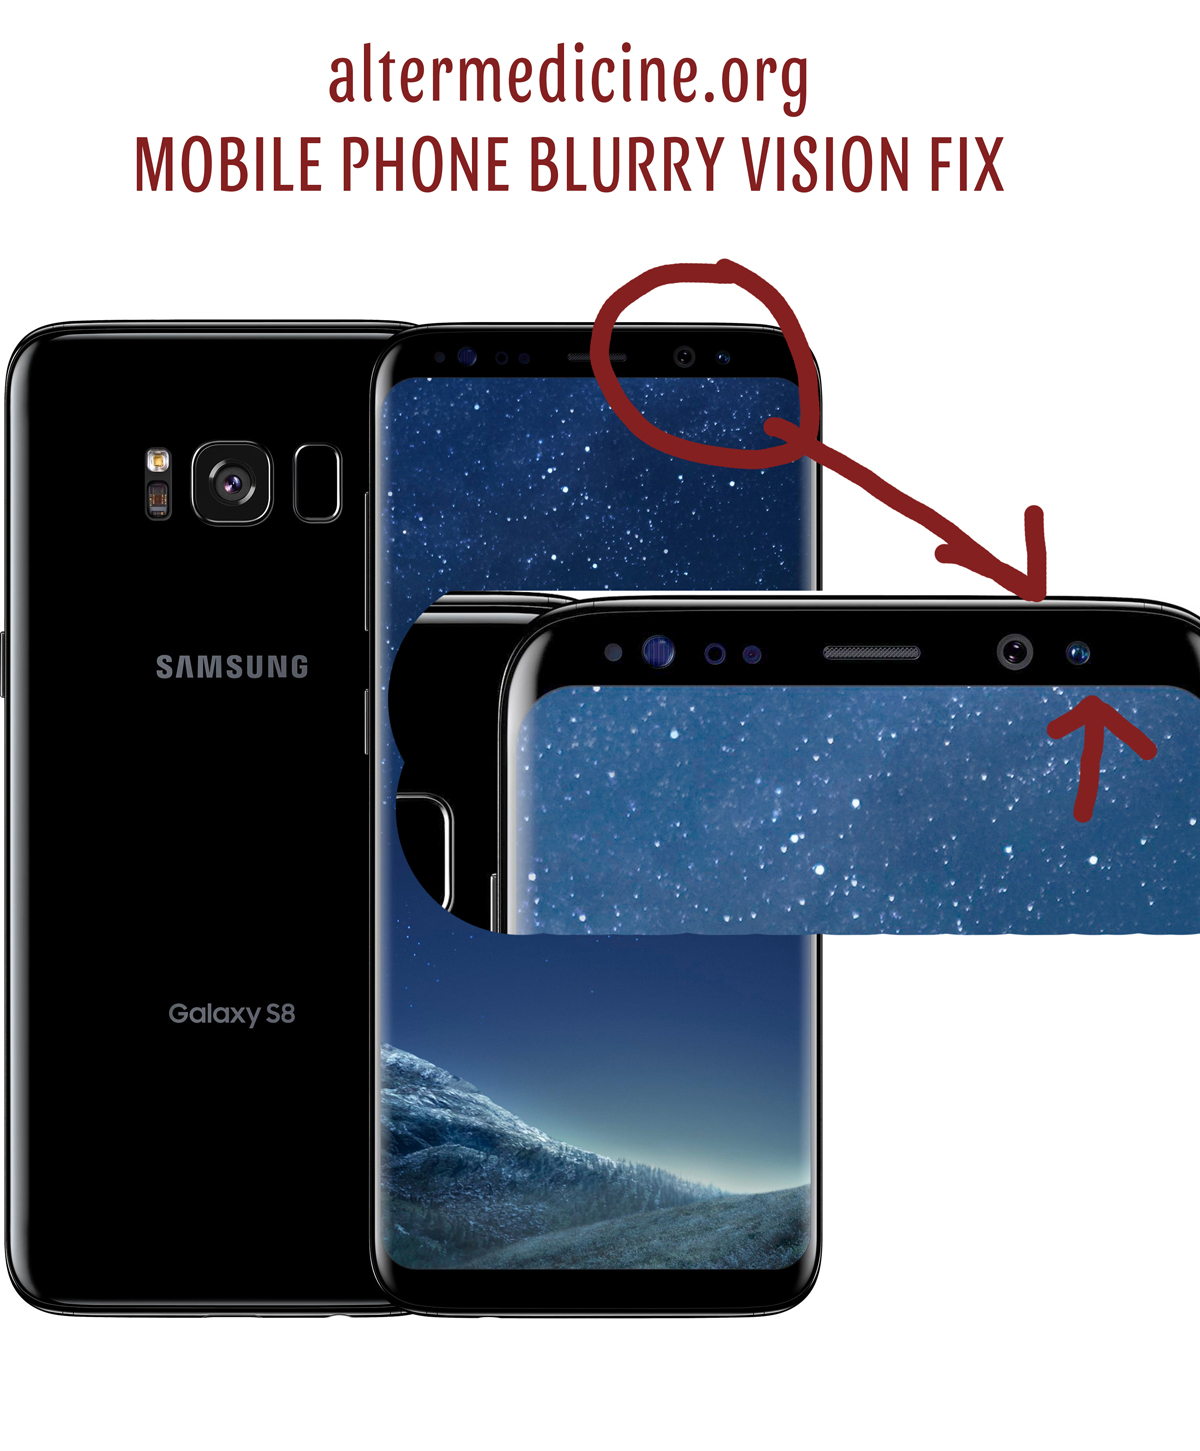 mobile phone blurry vision